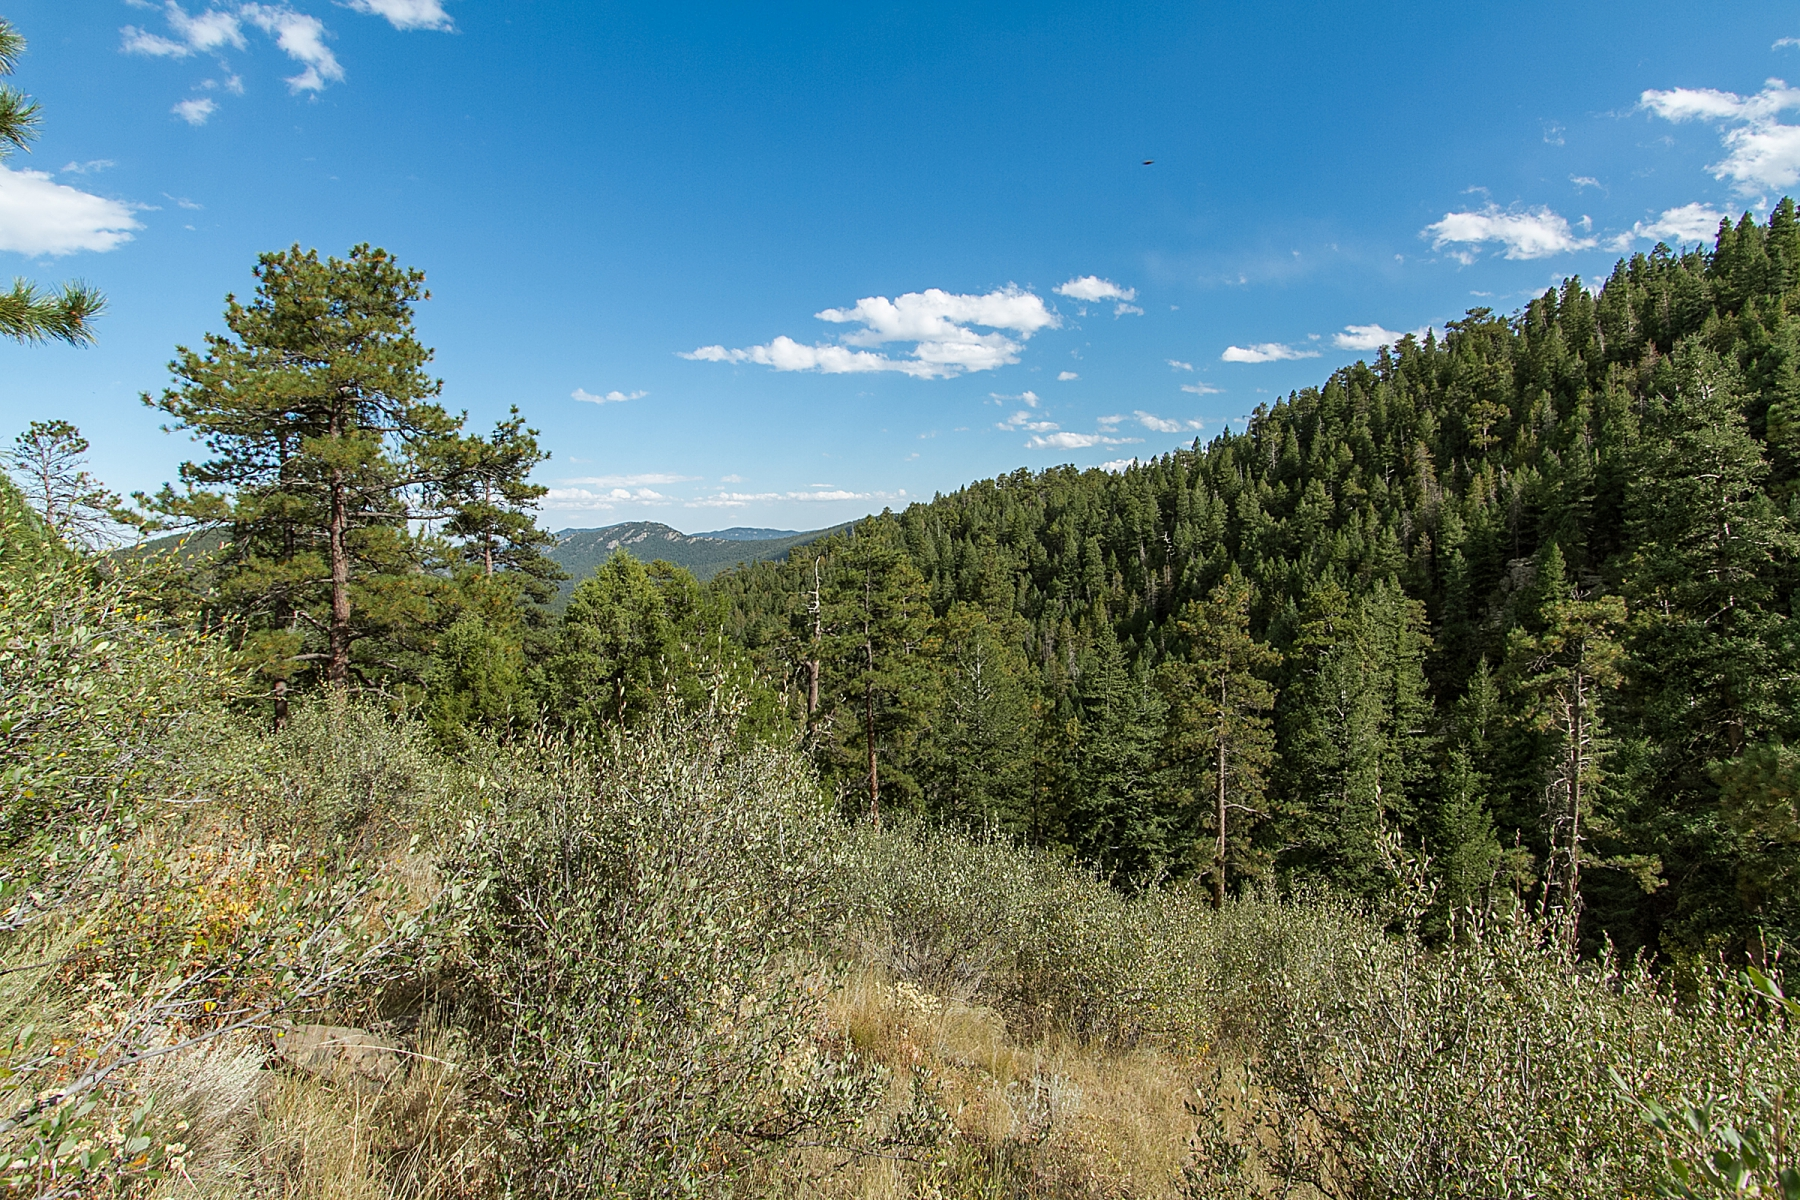 Additional photo for property listing at 123 Fox Ridge Drive 123 Fox Ridge Drive Evergreen, Colorado 80439 United States